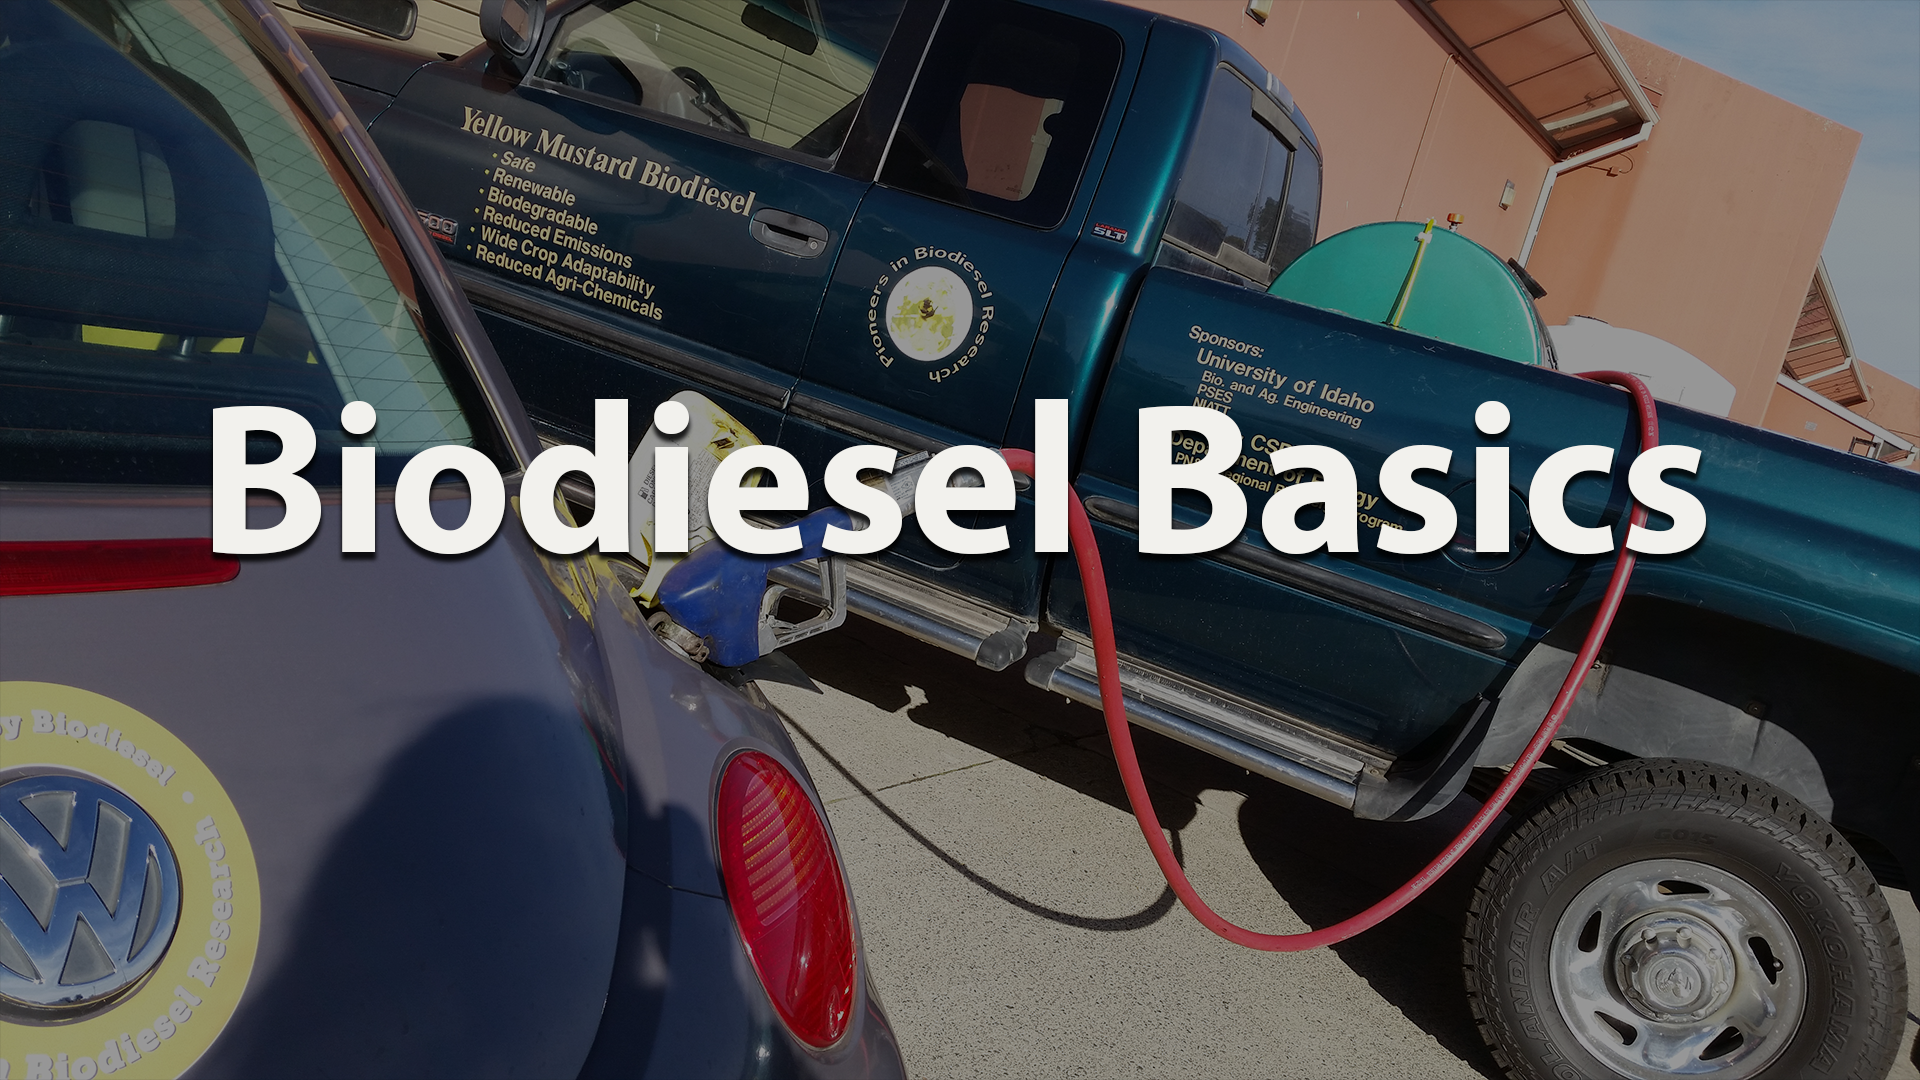 What if Biodiesel